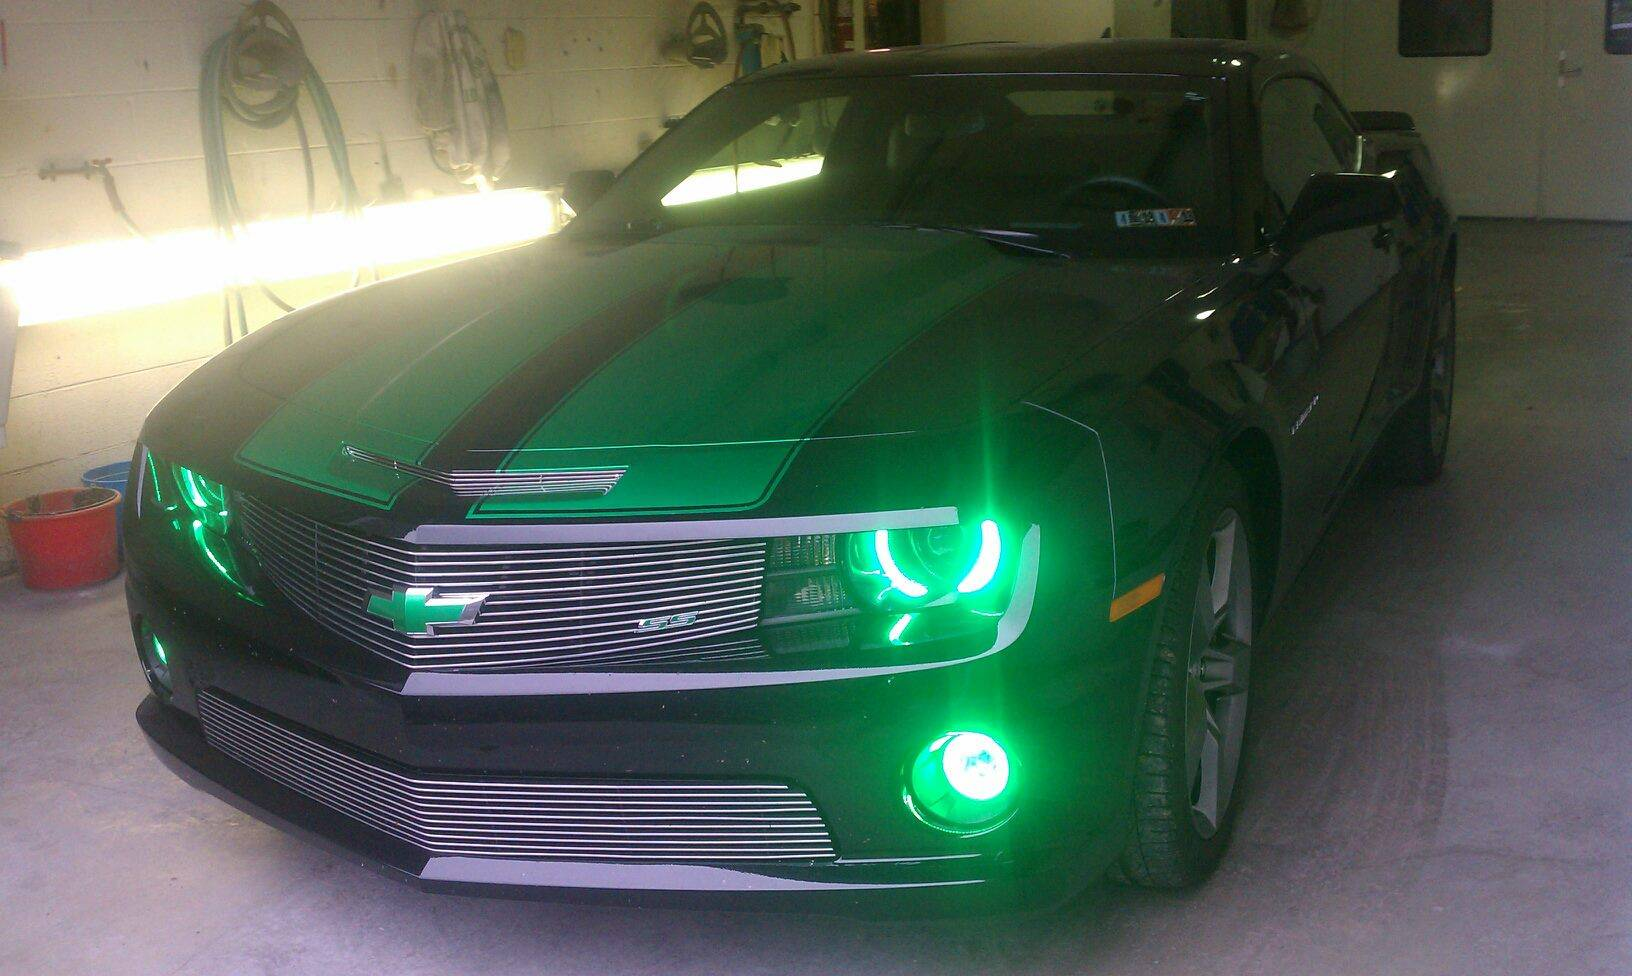 Co-Owner Drew's 2011 Camaro 2SS/RS